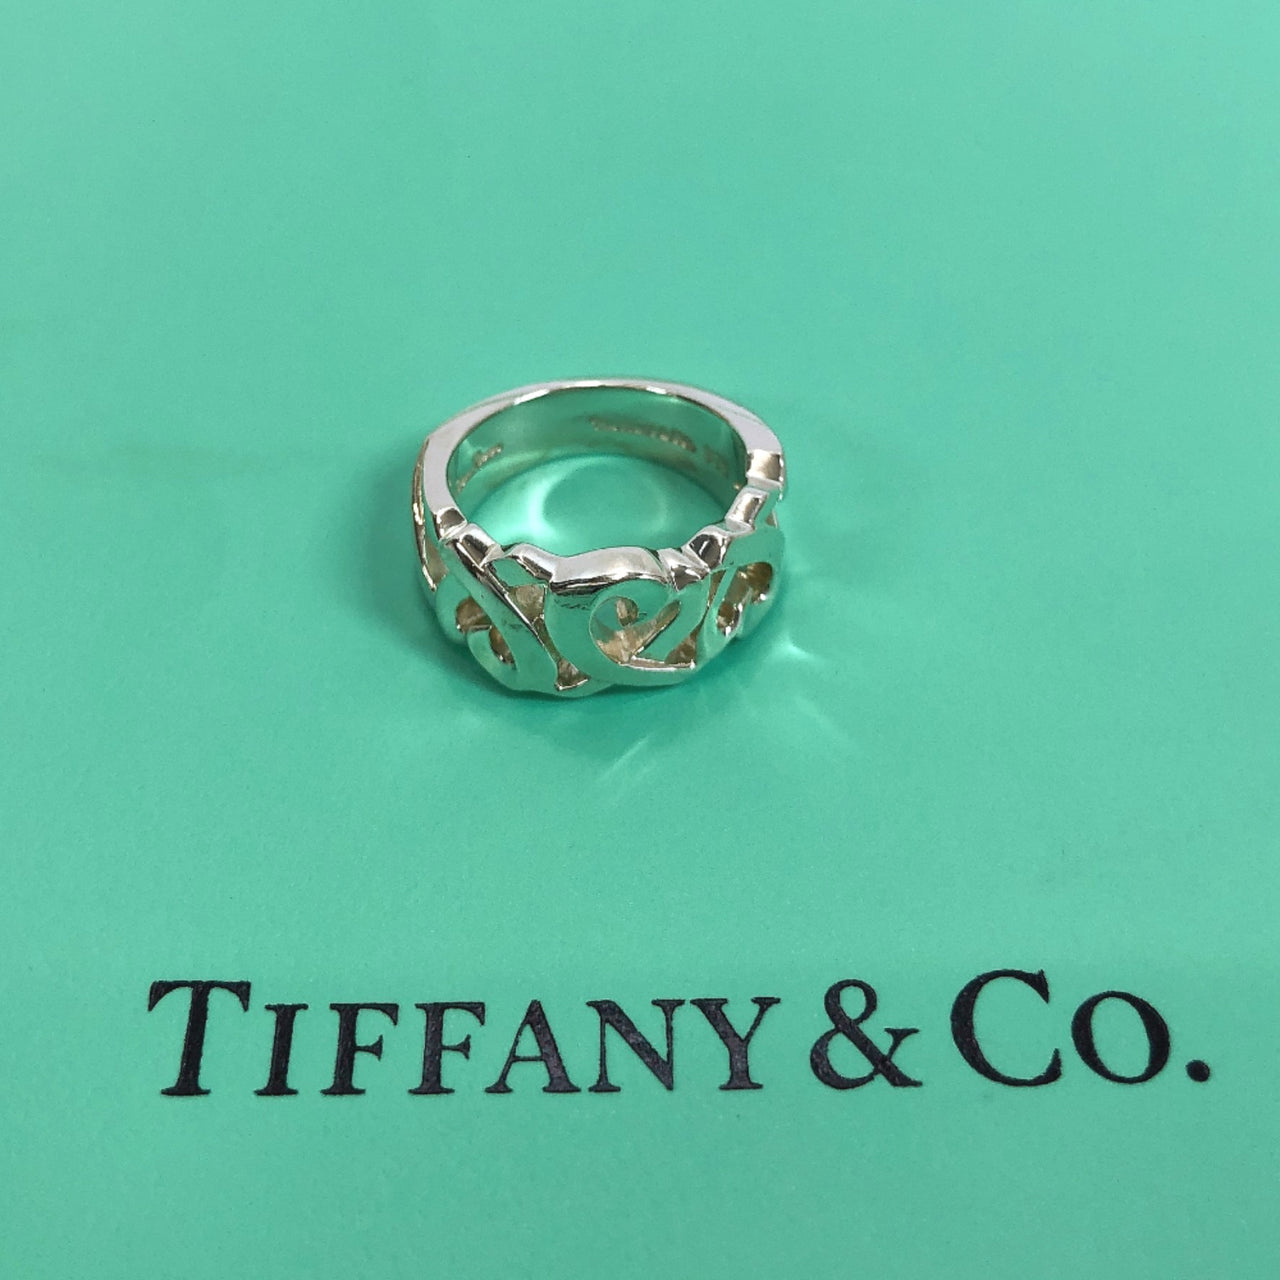 TIFFANY&Co. Ring Paloma Picasso Silver925 C Silver Women Used